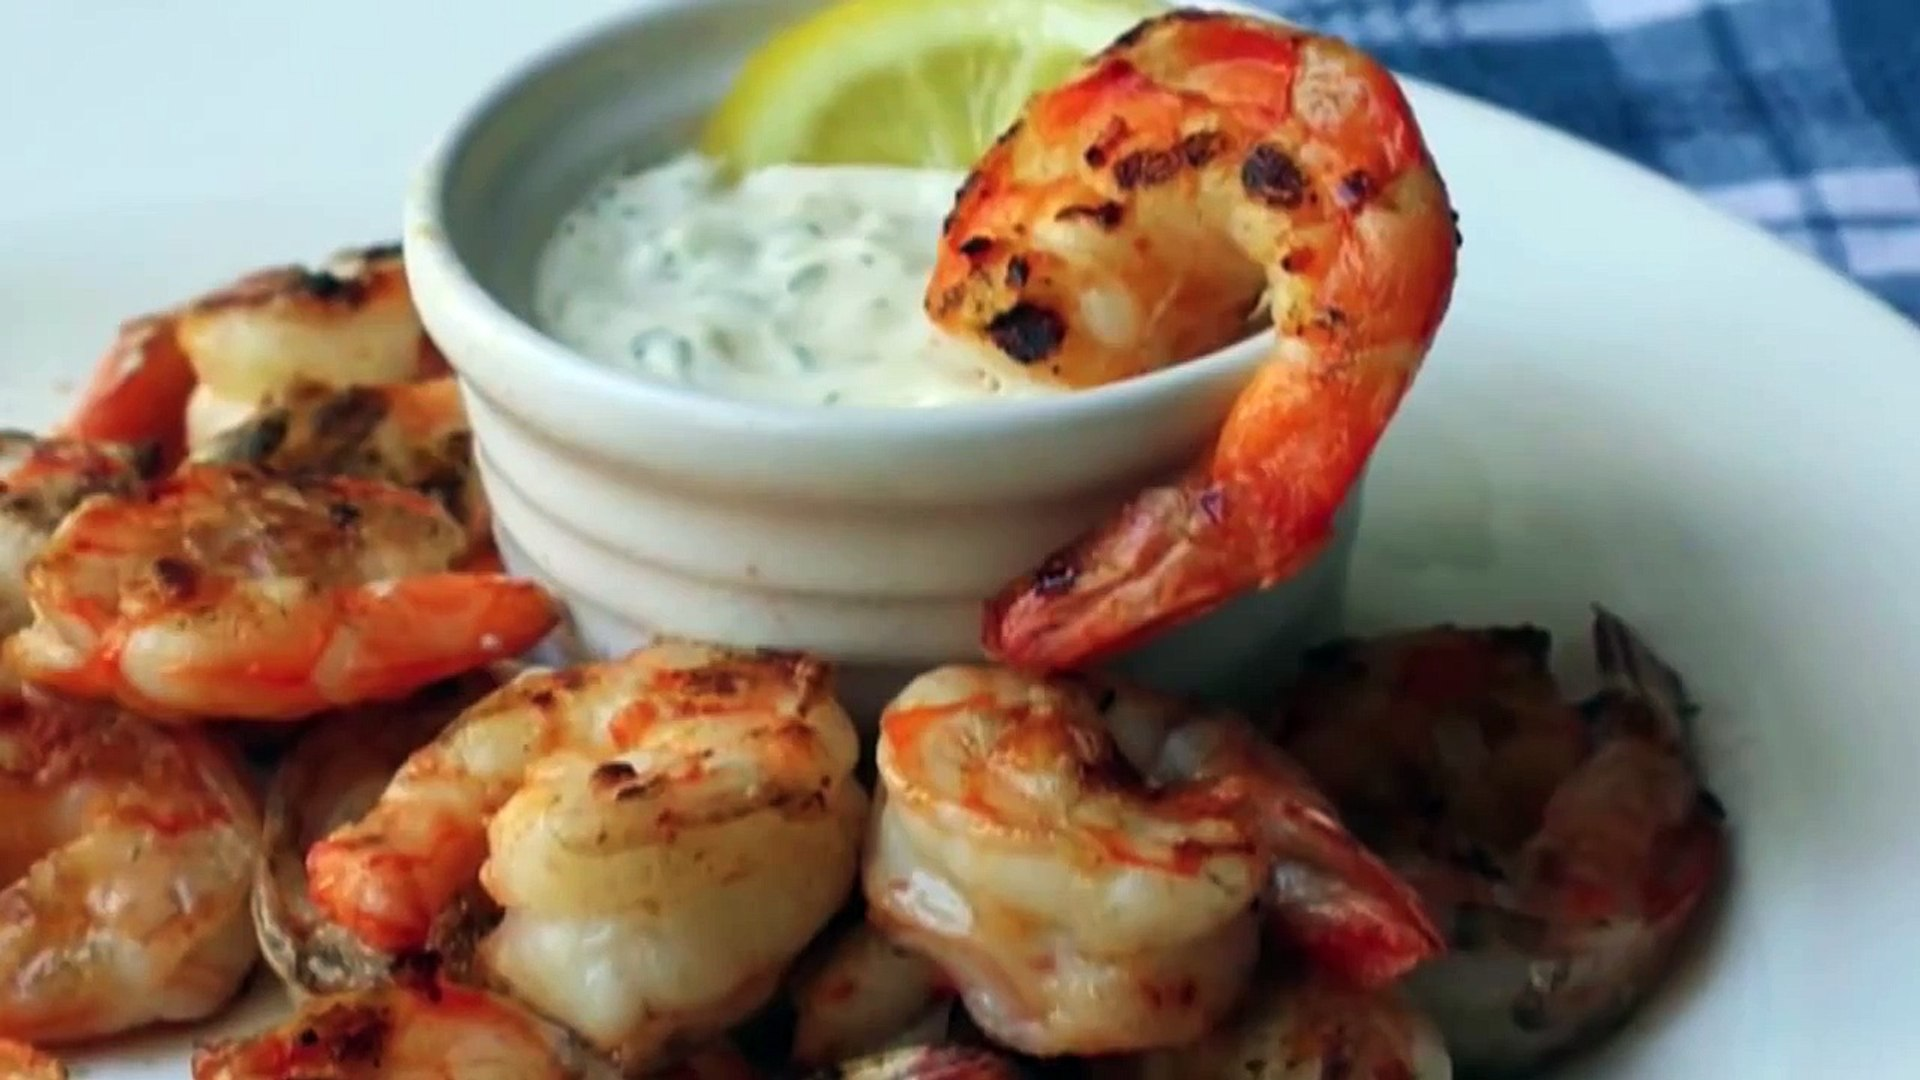 Food Wishes Recipes - Grilled Shrimp with Lemon Aioli Recipe - Grilled Shrimp Recipe with Cured Lemo